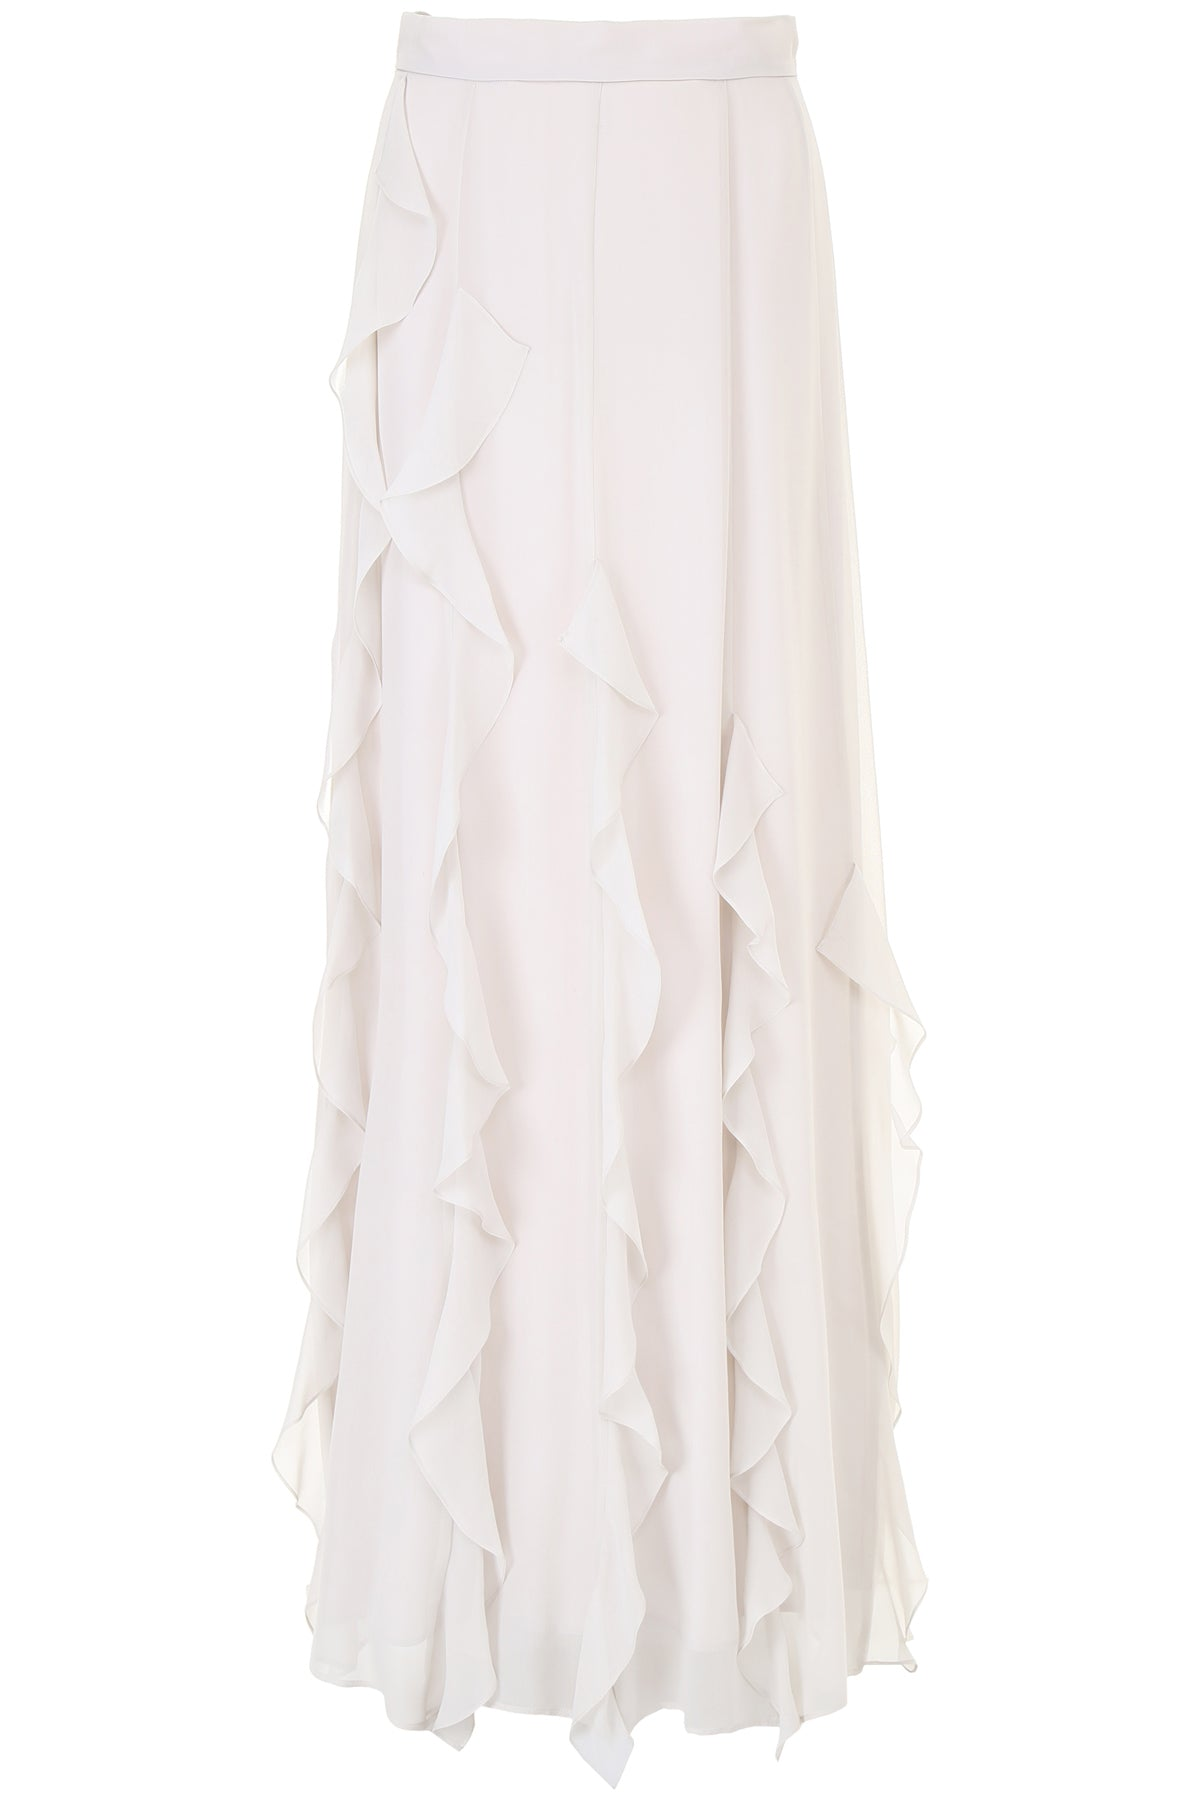 MAX MARA SERAGIN RUCHES MAXI SKIRT